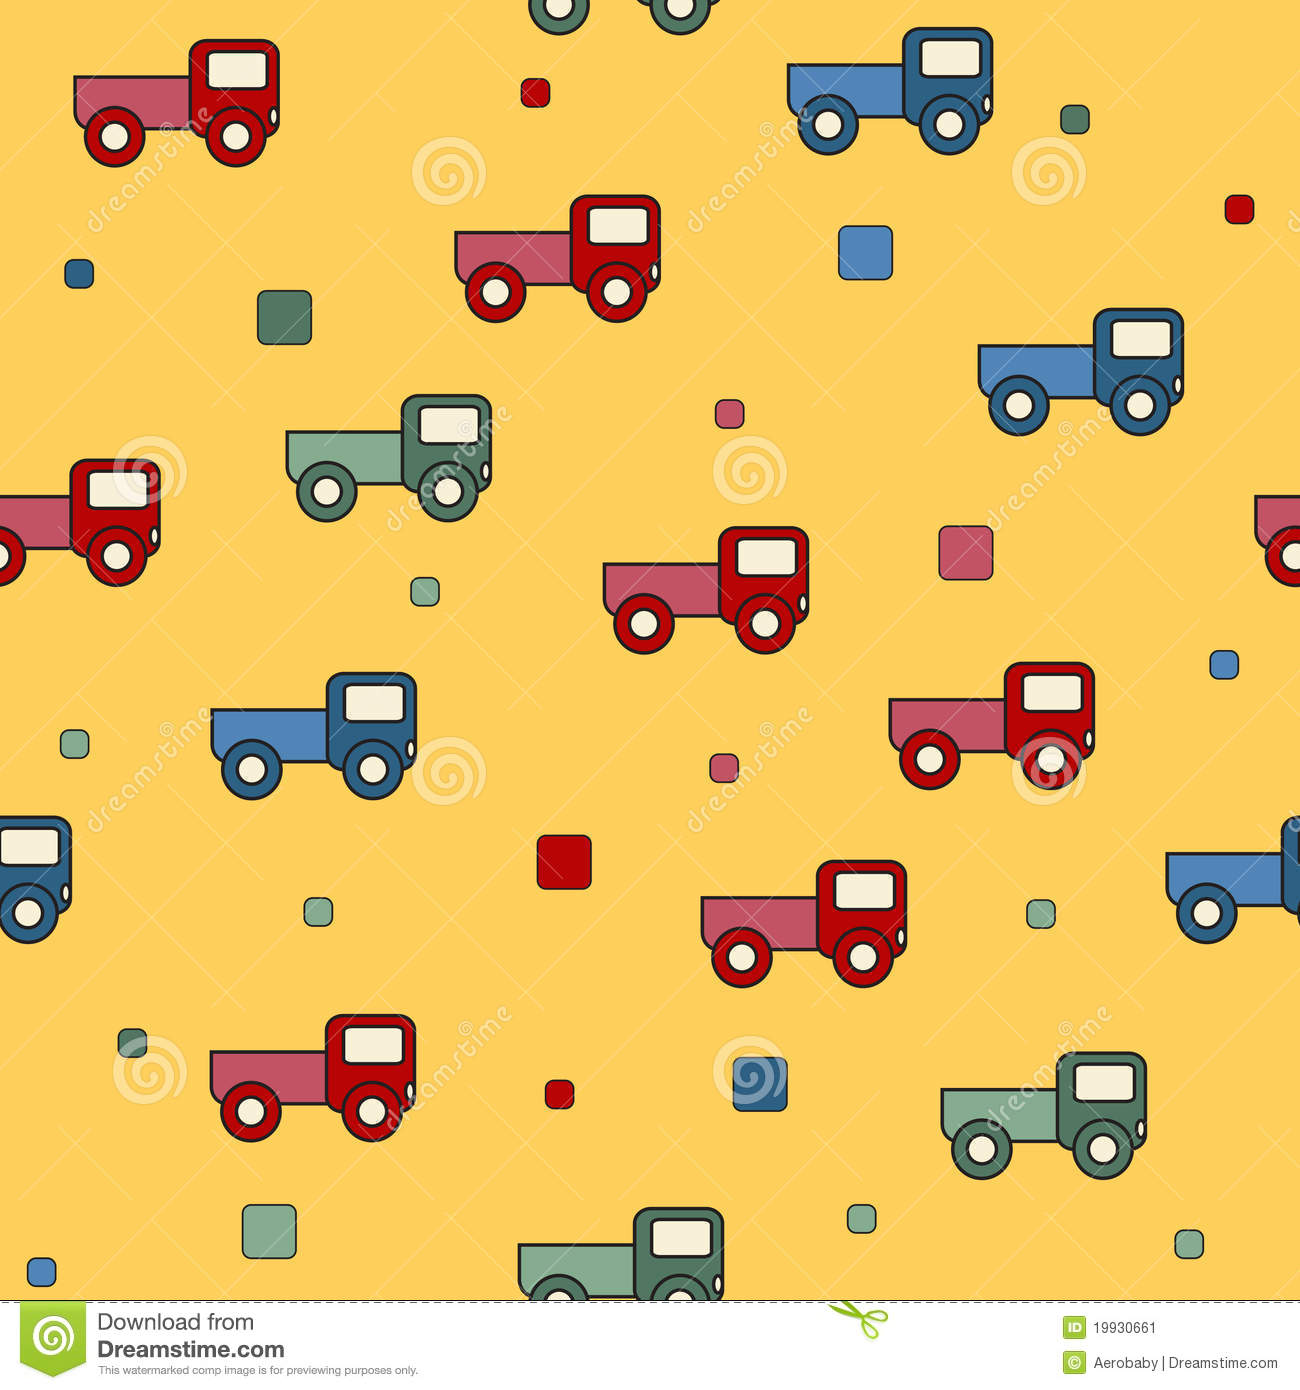 Audio Car Wallpaper Download Seamless Truck Toys Background Stock Vector Image 19930661